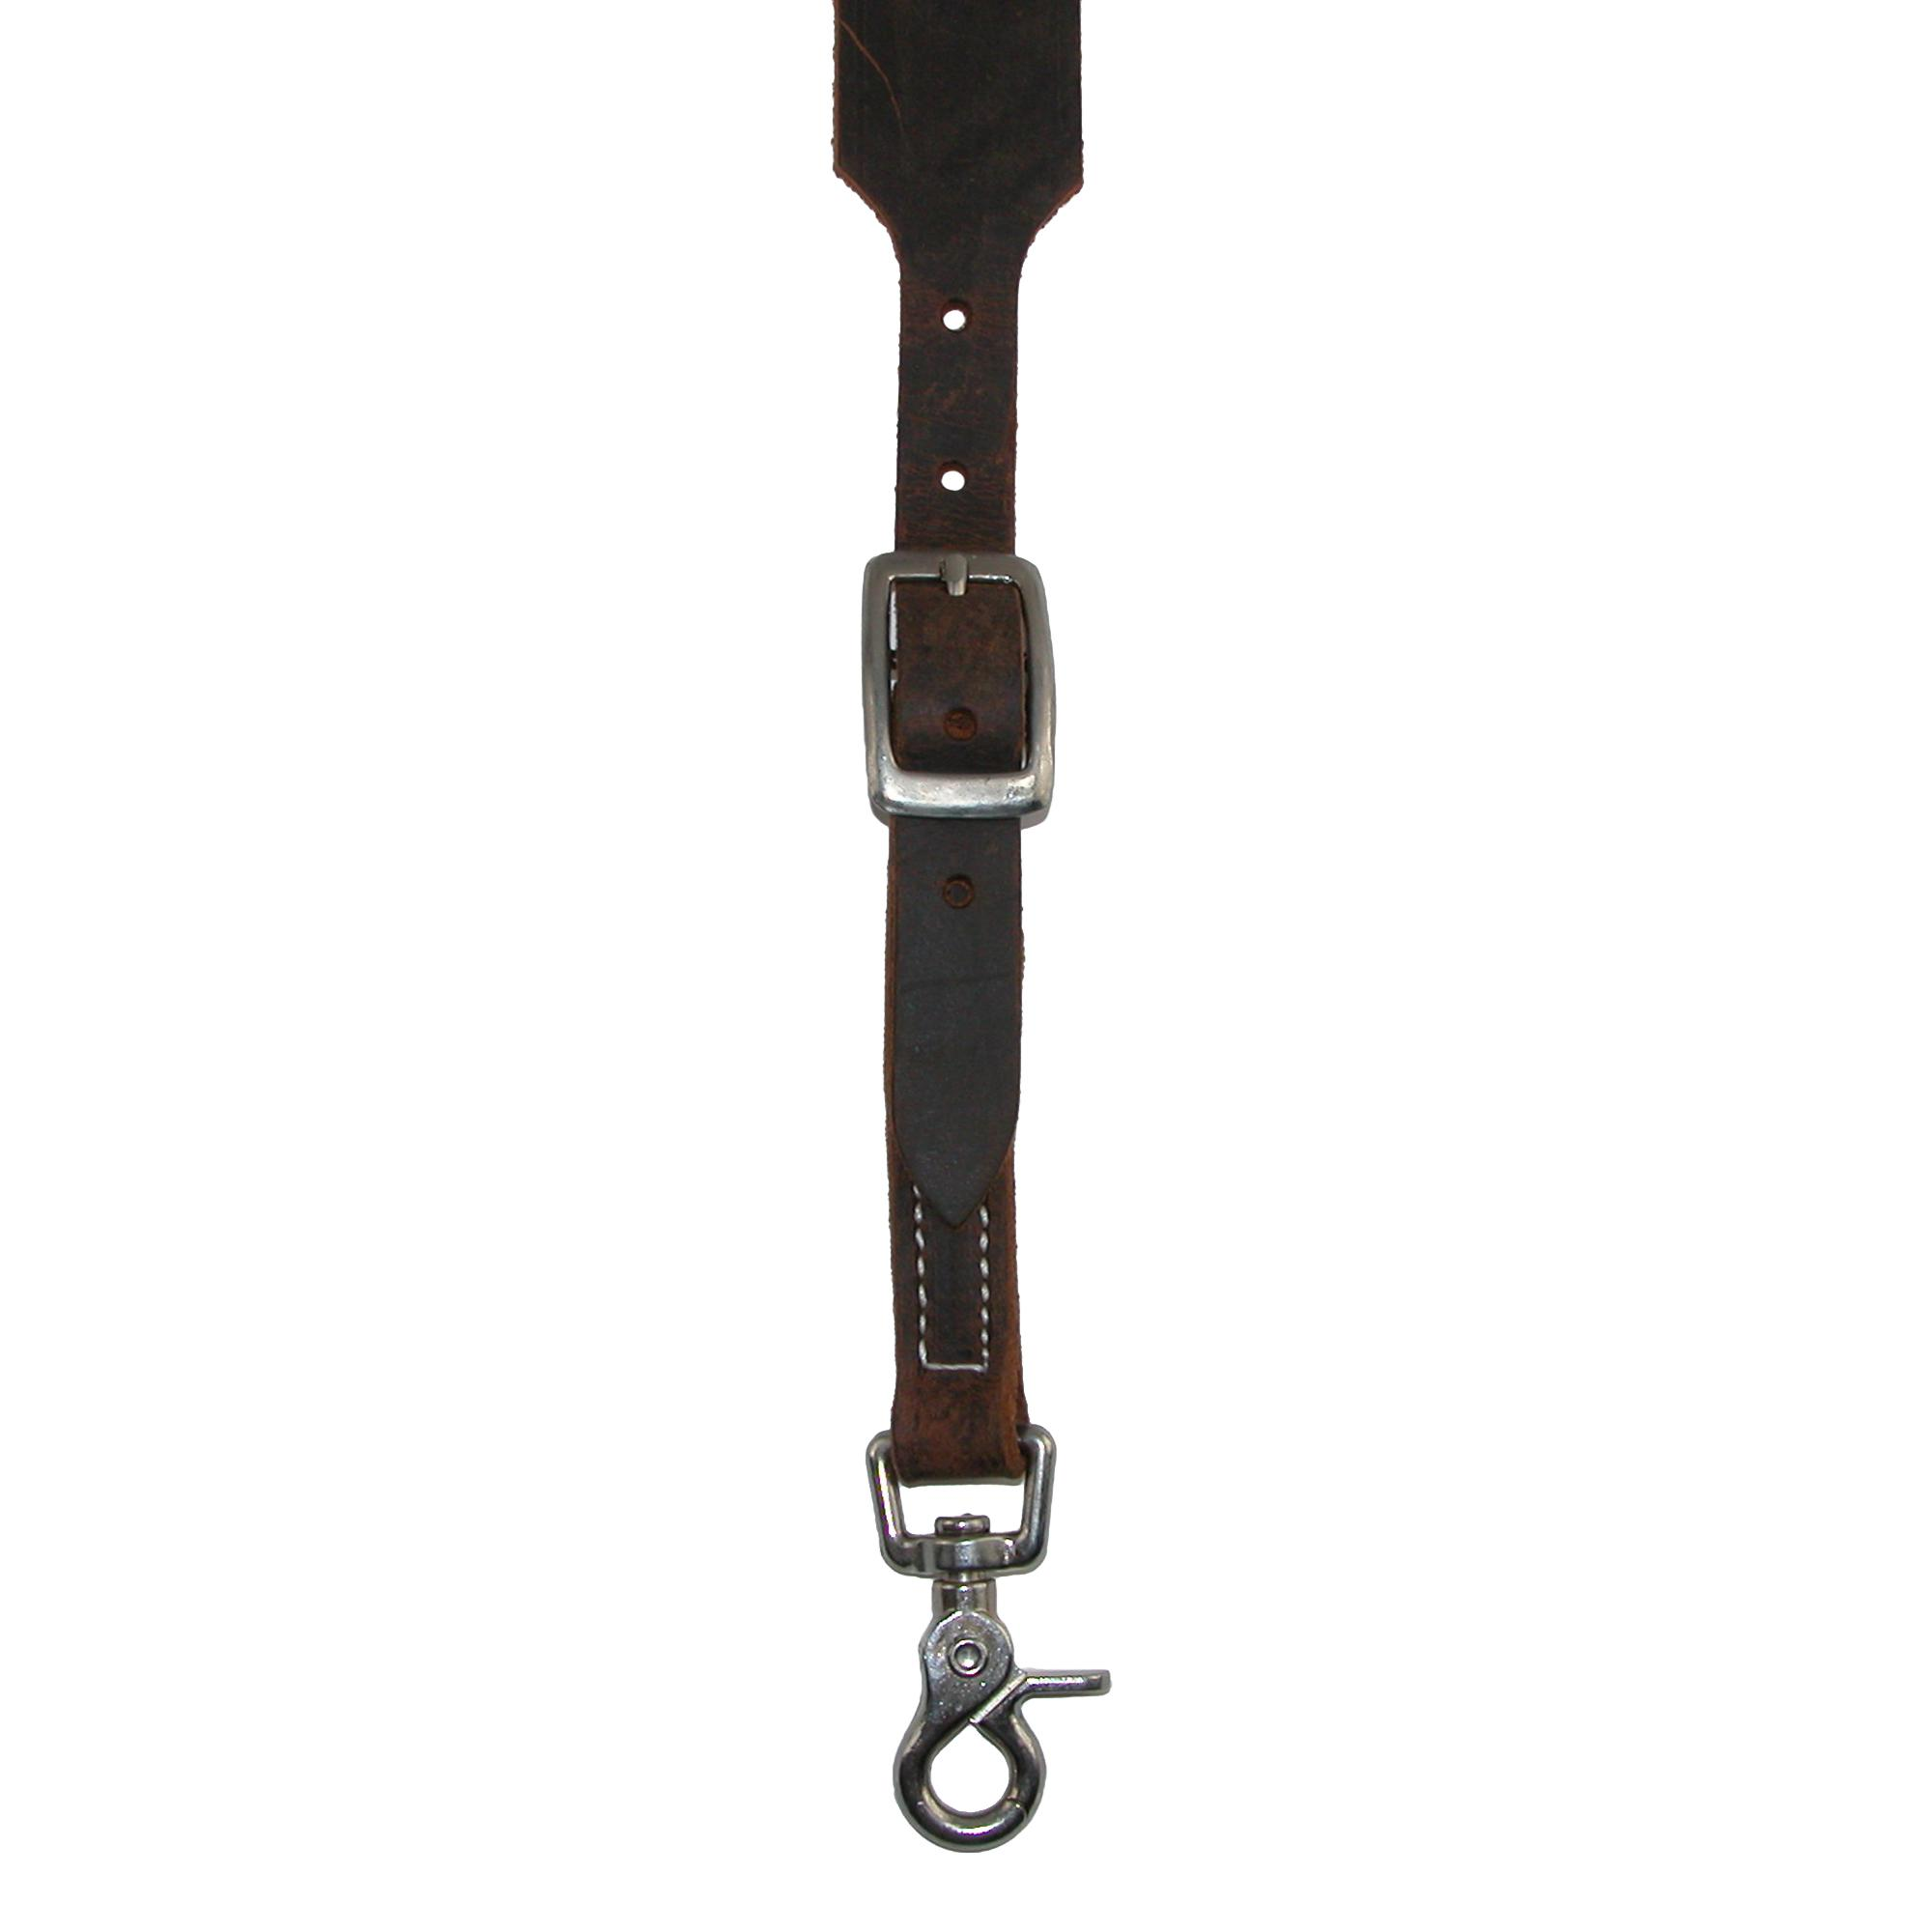 New 3 D Belt Company Men/'s Leather Distressed Suspender with Metal Swivel Hook